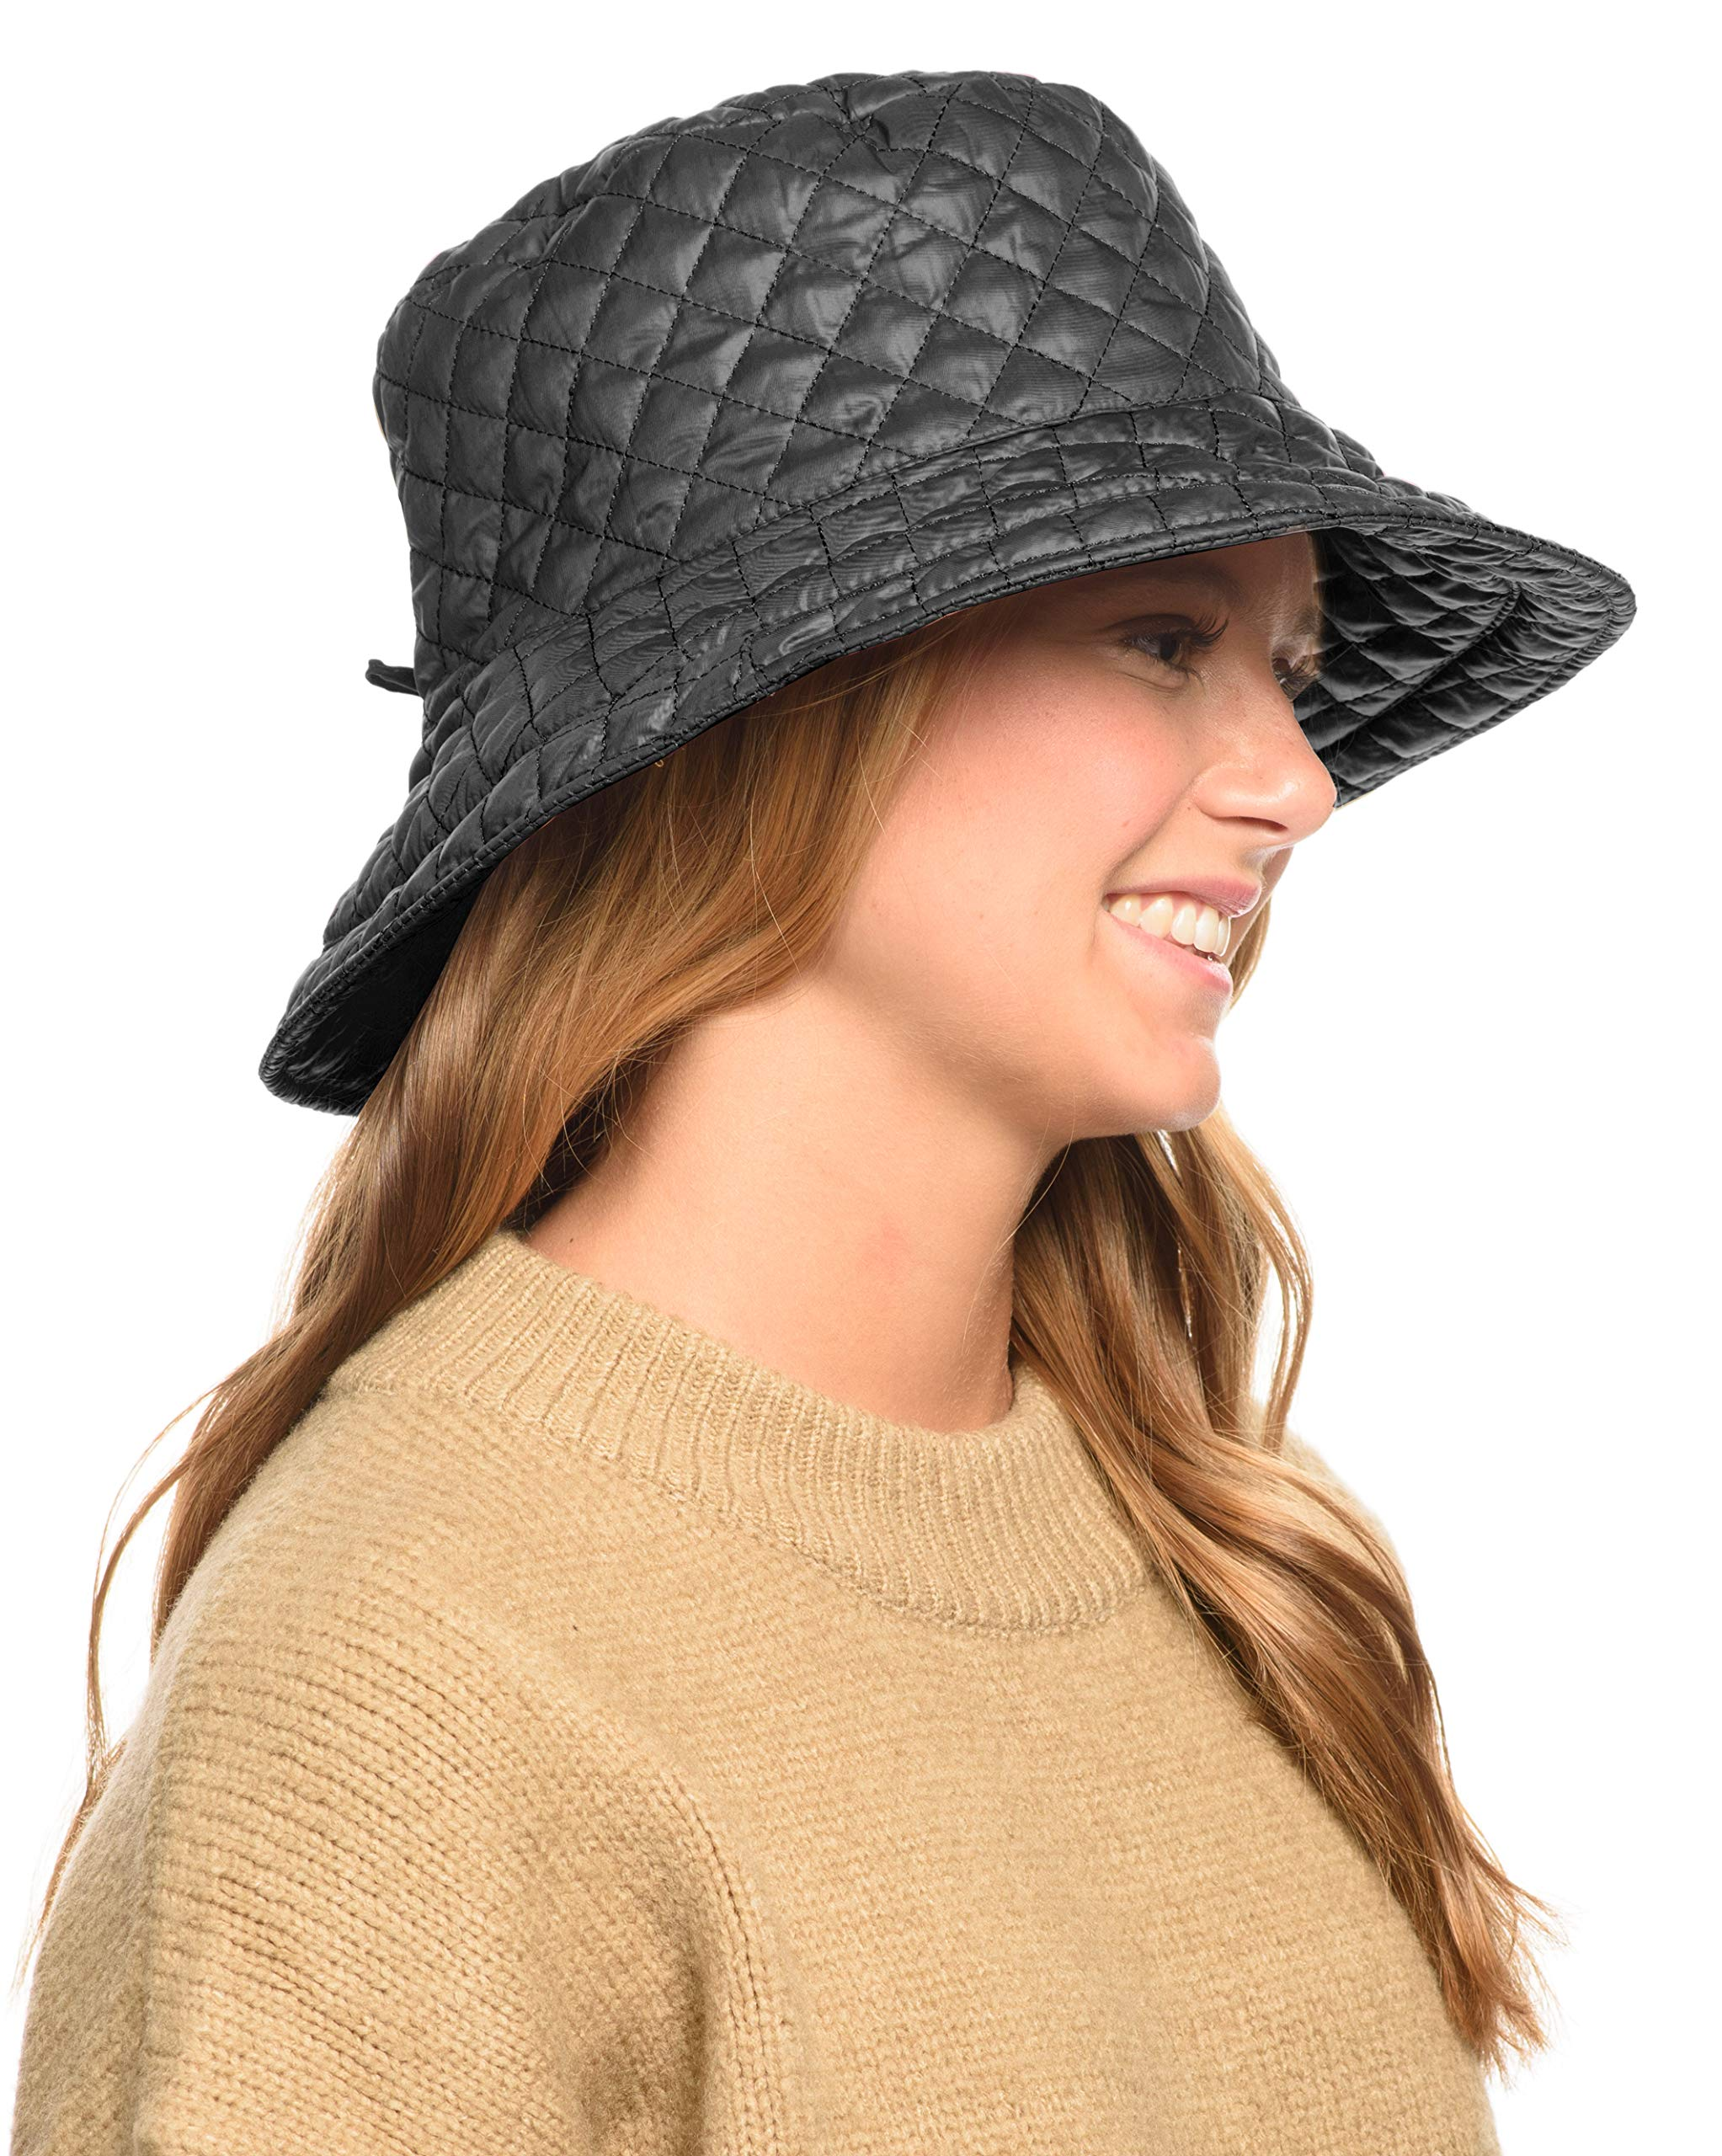 ANGELA & WILLIAM Foldable Water Repellent Quilted Rain Hat w/Adjustable Drawstring, Bucket Cap (Gray)